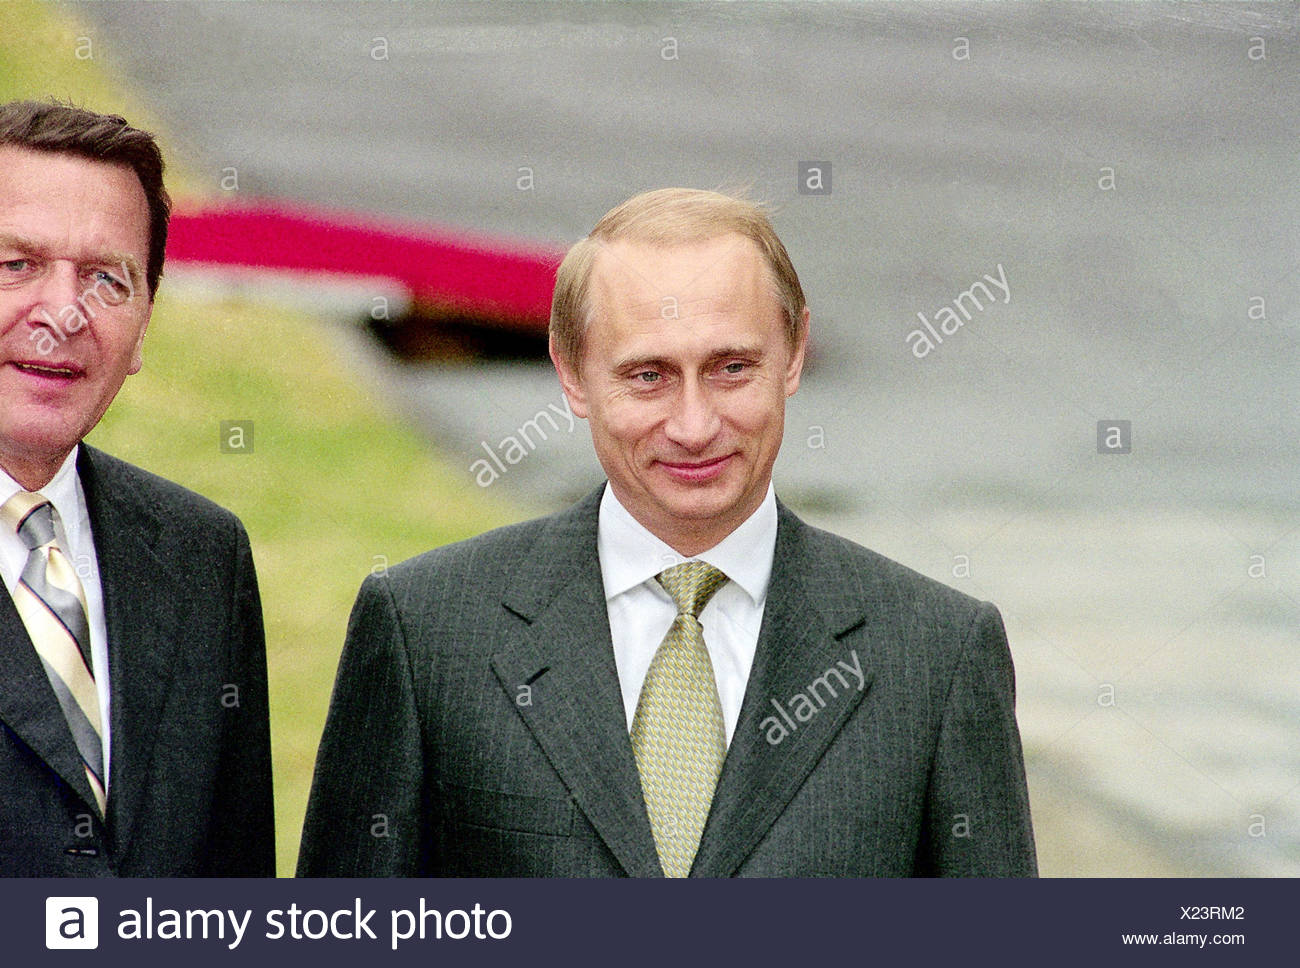 Putin, Vladimir, * 7.10.1952, Russian politician, president of Russia since 2000, half length, with chancellor Gerhard Schroeder, visiting Berlin, 15.6.2000, Additional-Rights-Clearances-NA - Stock Image